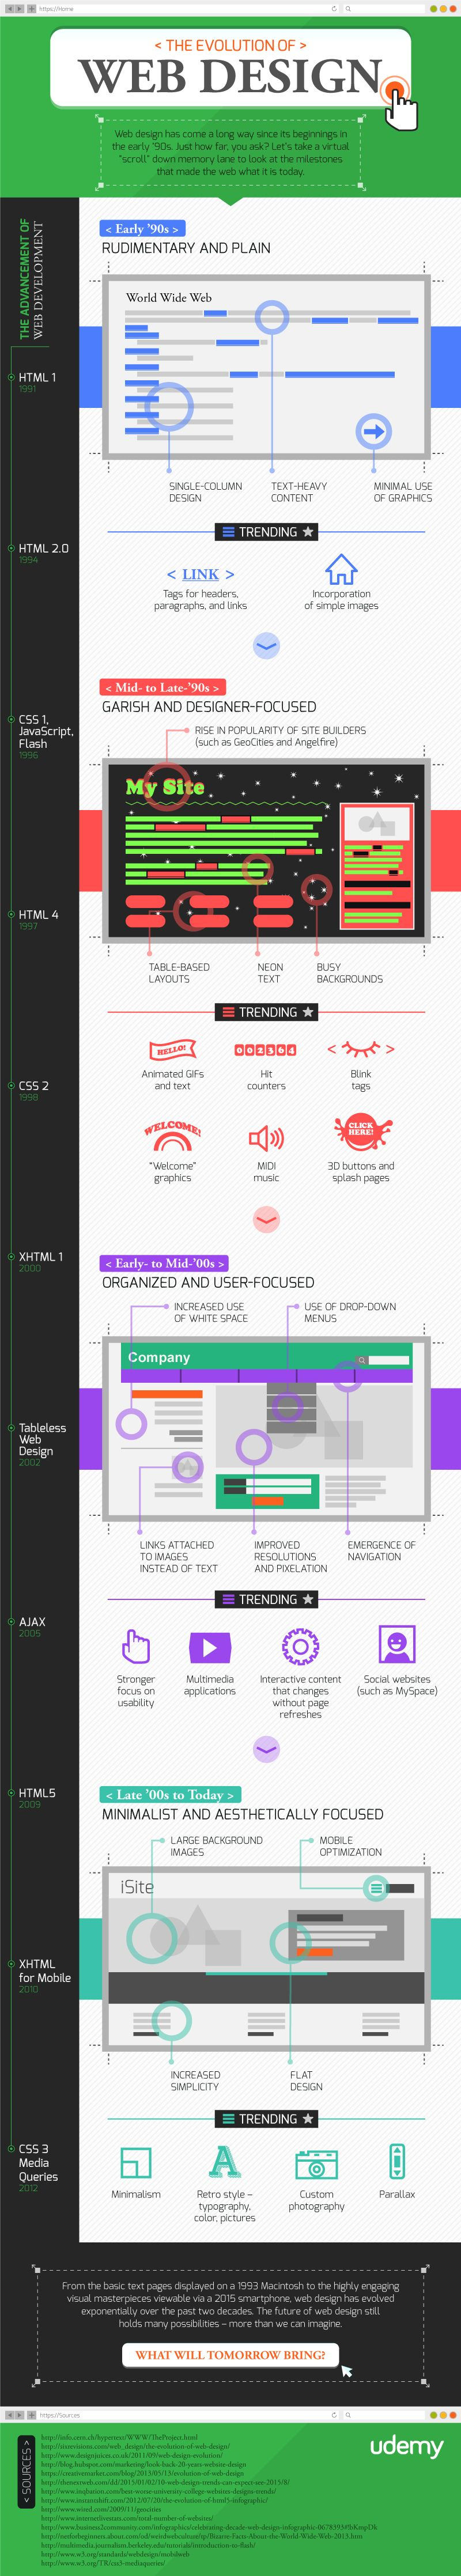 The Evolution of Web Design #infographic